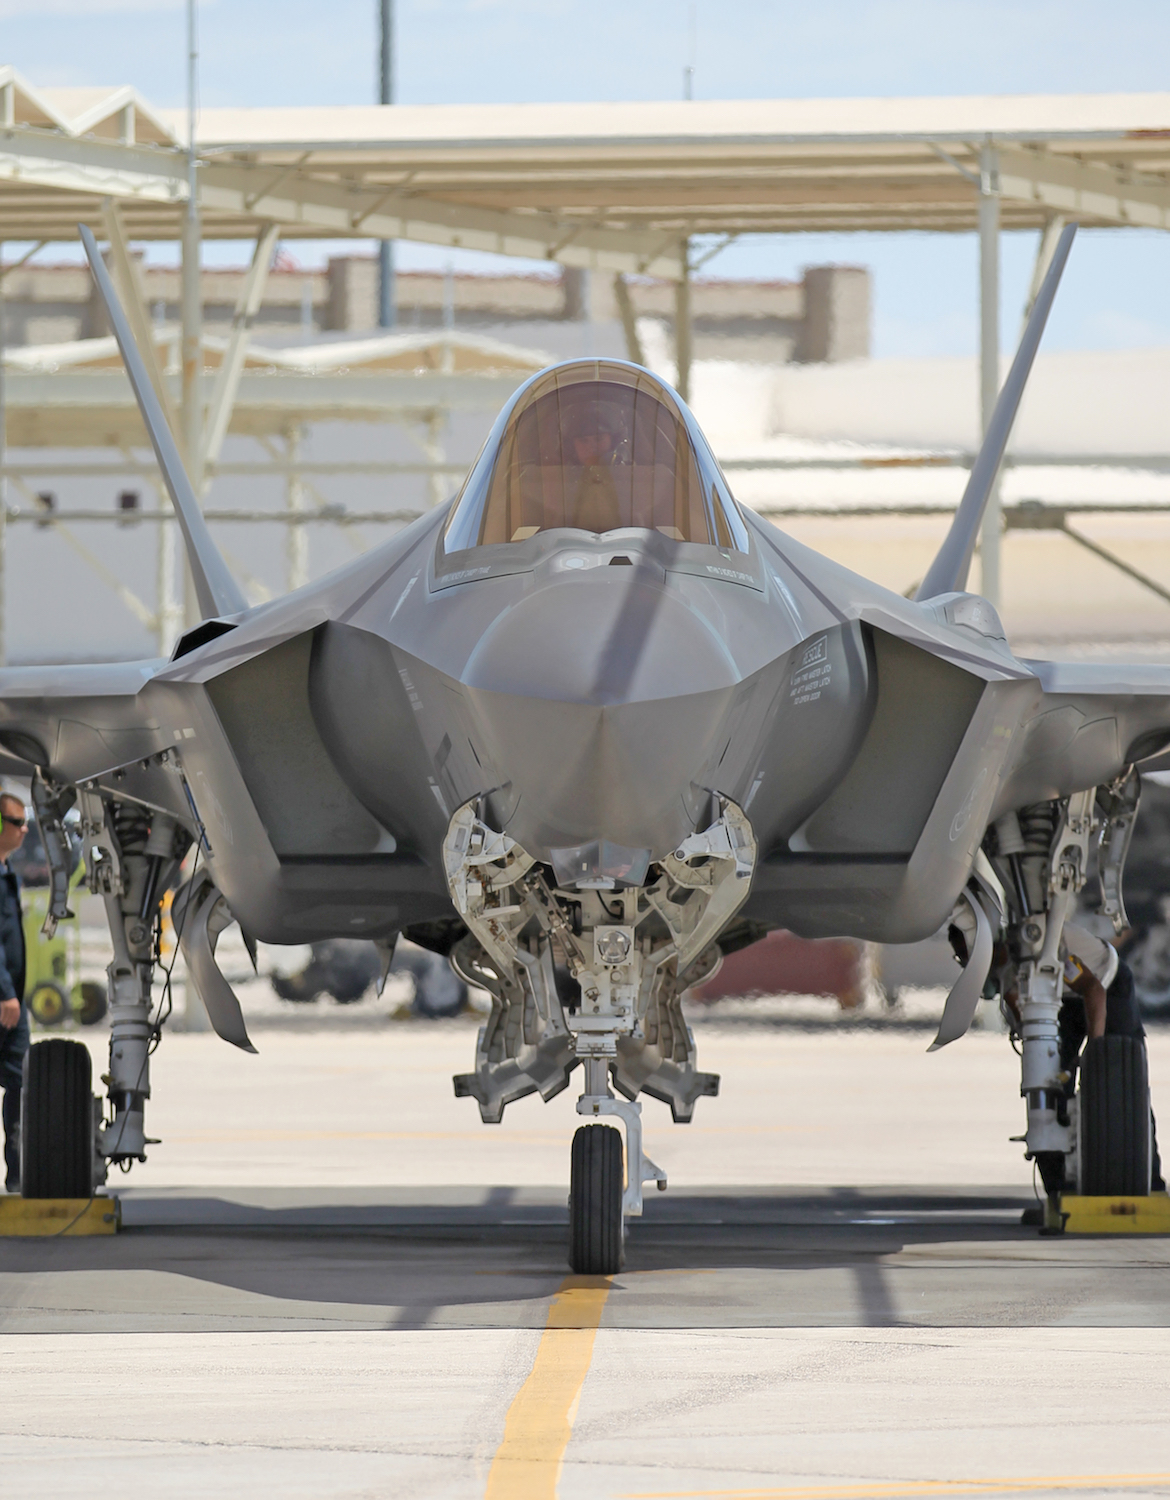 An F-35 at Luke Air Force Base. (Andrew McLaughlin)